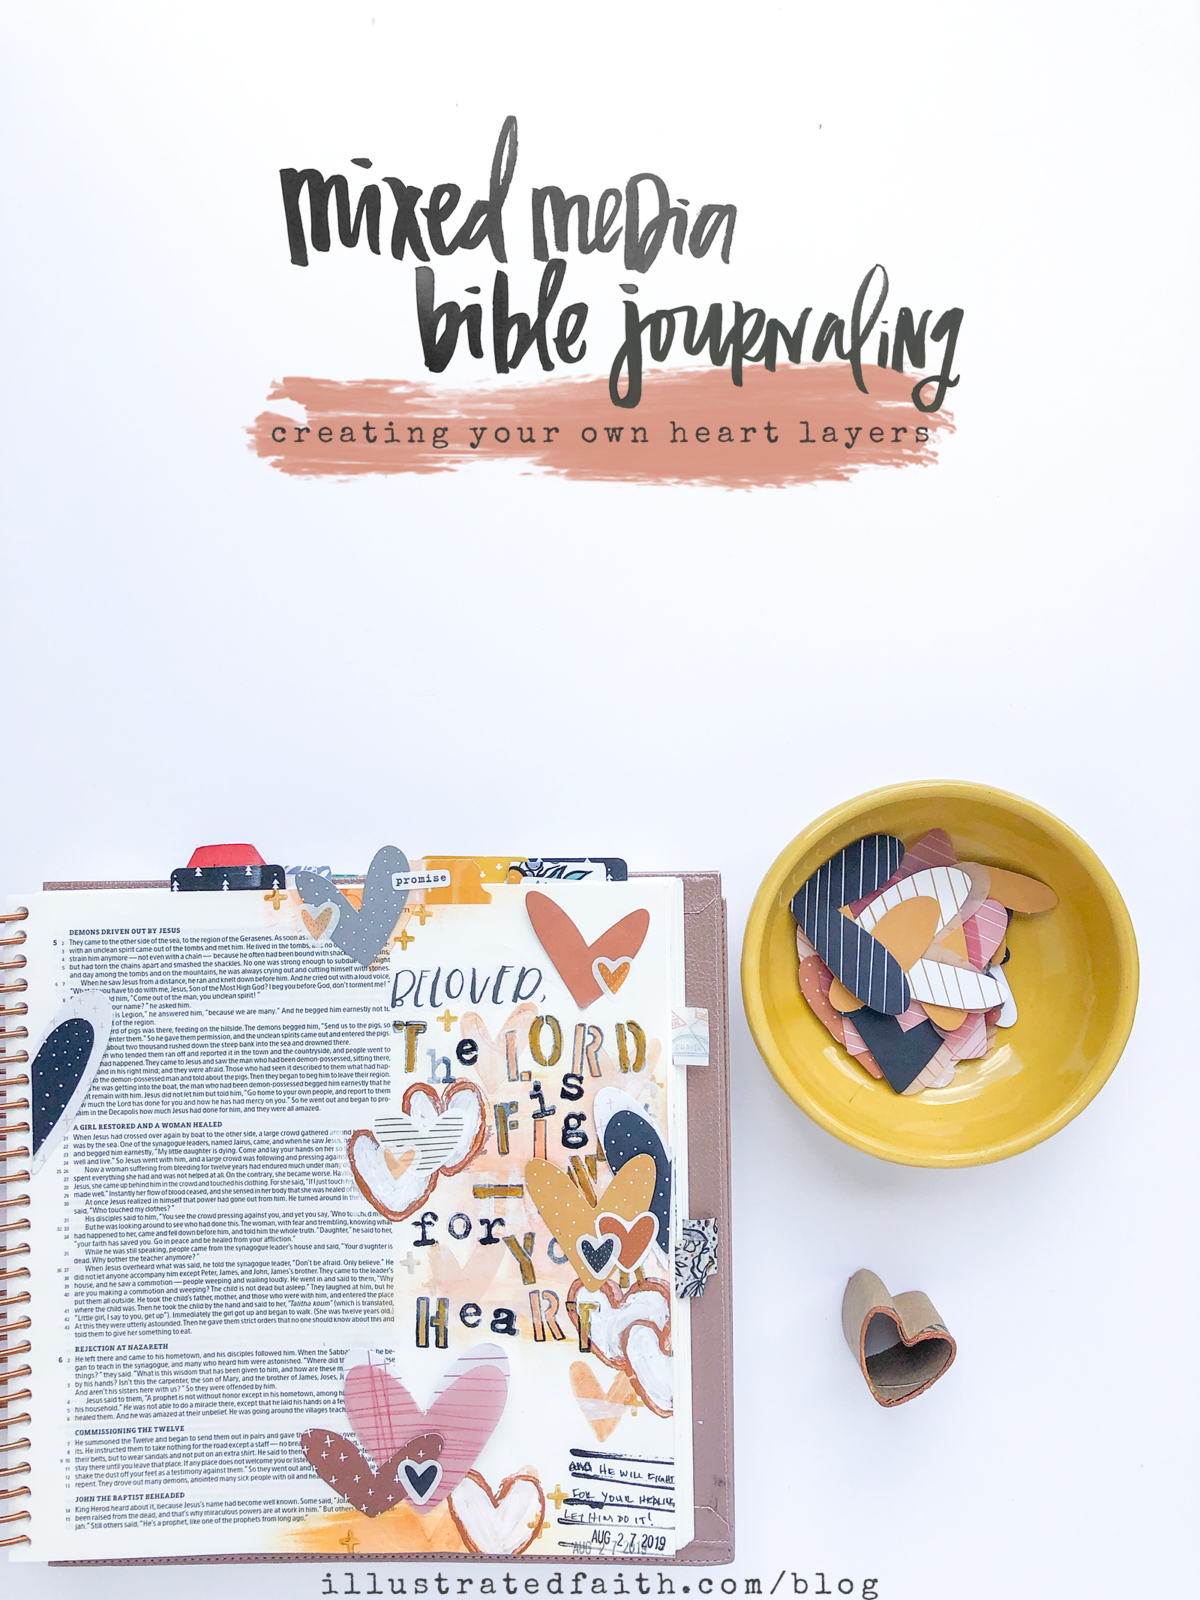 mixed media bible journaling tutorial by heather greenwood | creating a cardboard heart stamp | Illustrated Faith Heart Layers Devotional Kit | Mark 5